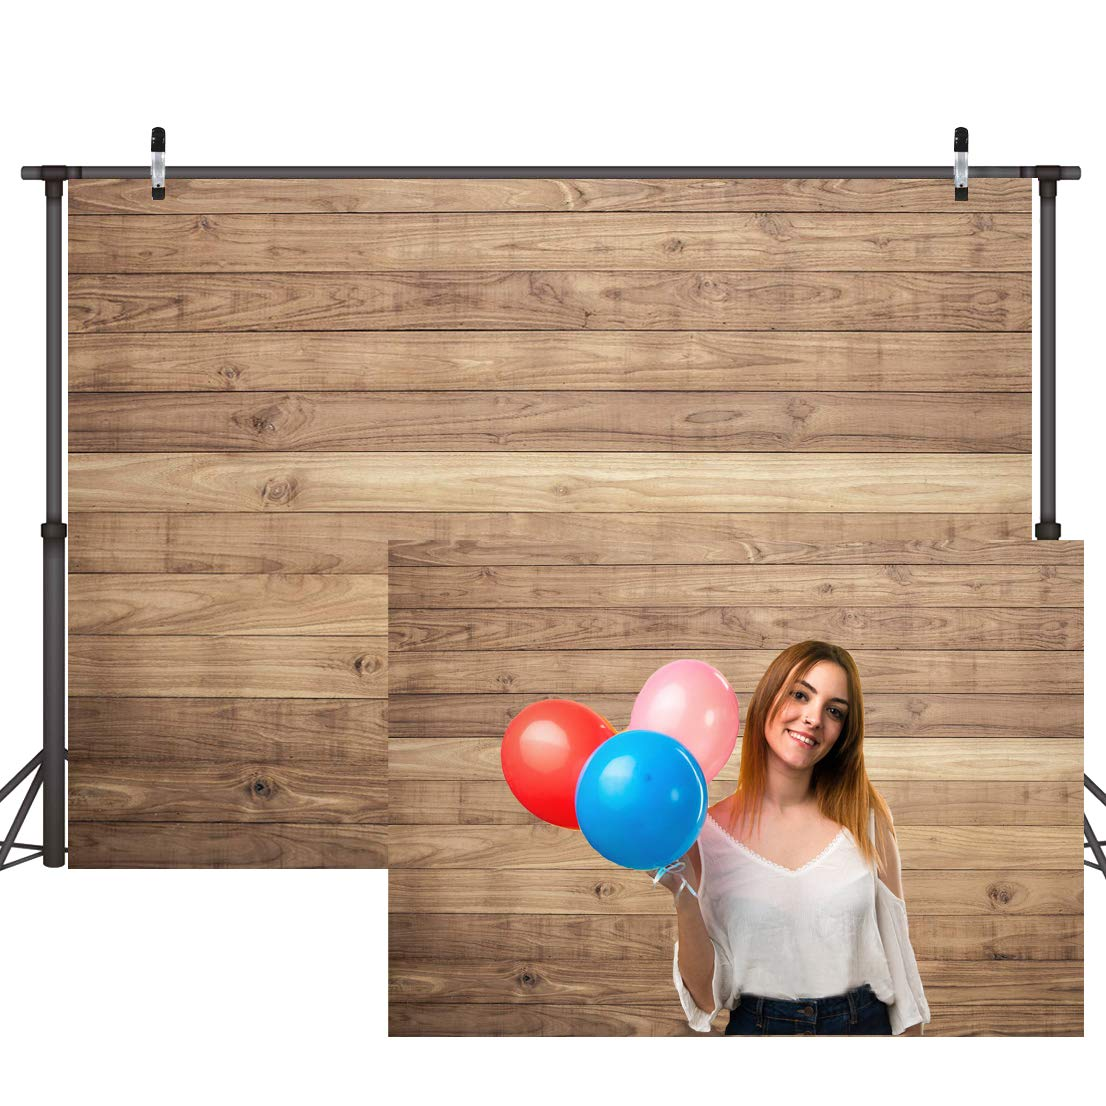 CYLYH 7x5ft Vinyl Wood Backdrop for Photography Rustic Natural Wood Floor Background Baby Shower Backdrops Party Newborn Baby Photoshoot Portrait Studio Props D178 by CYLYH